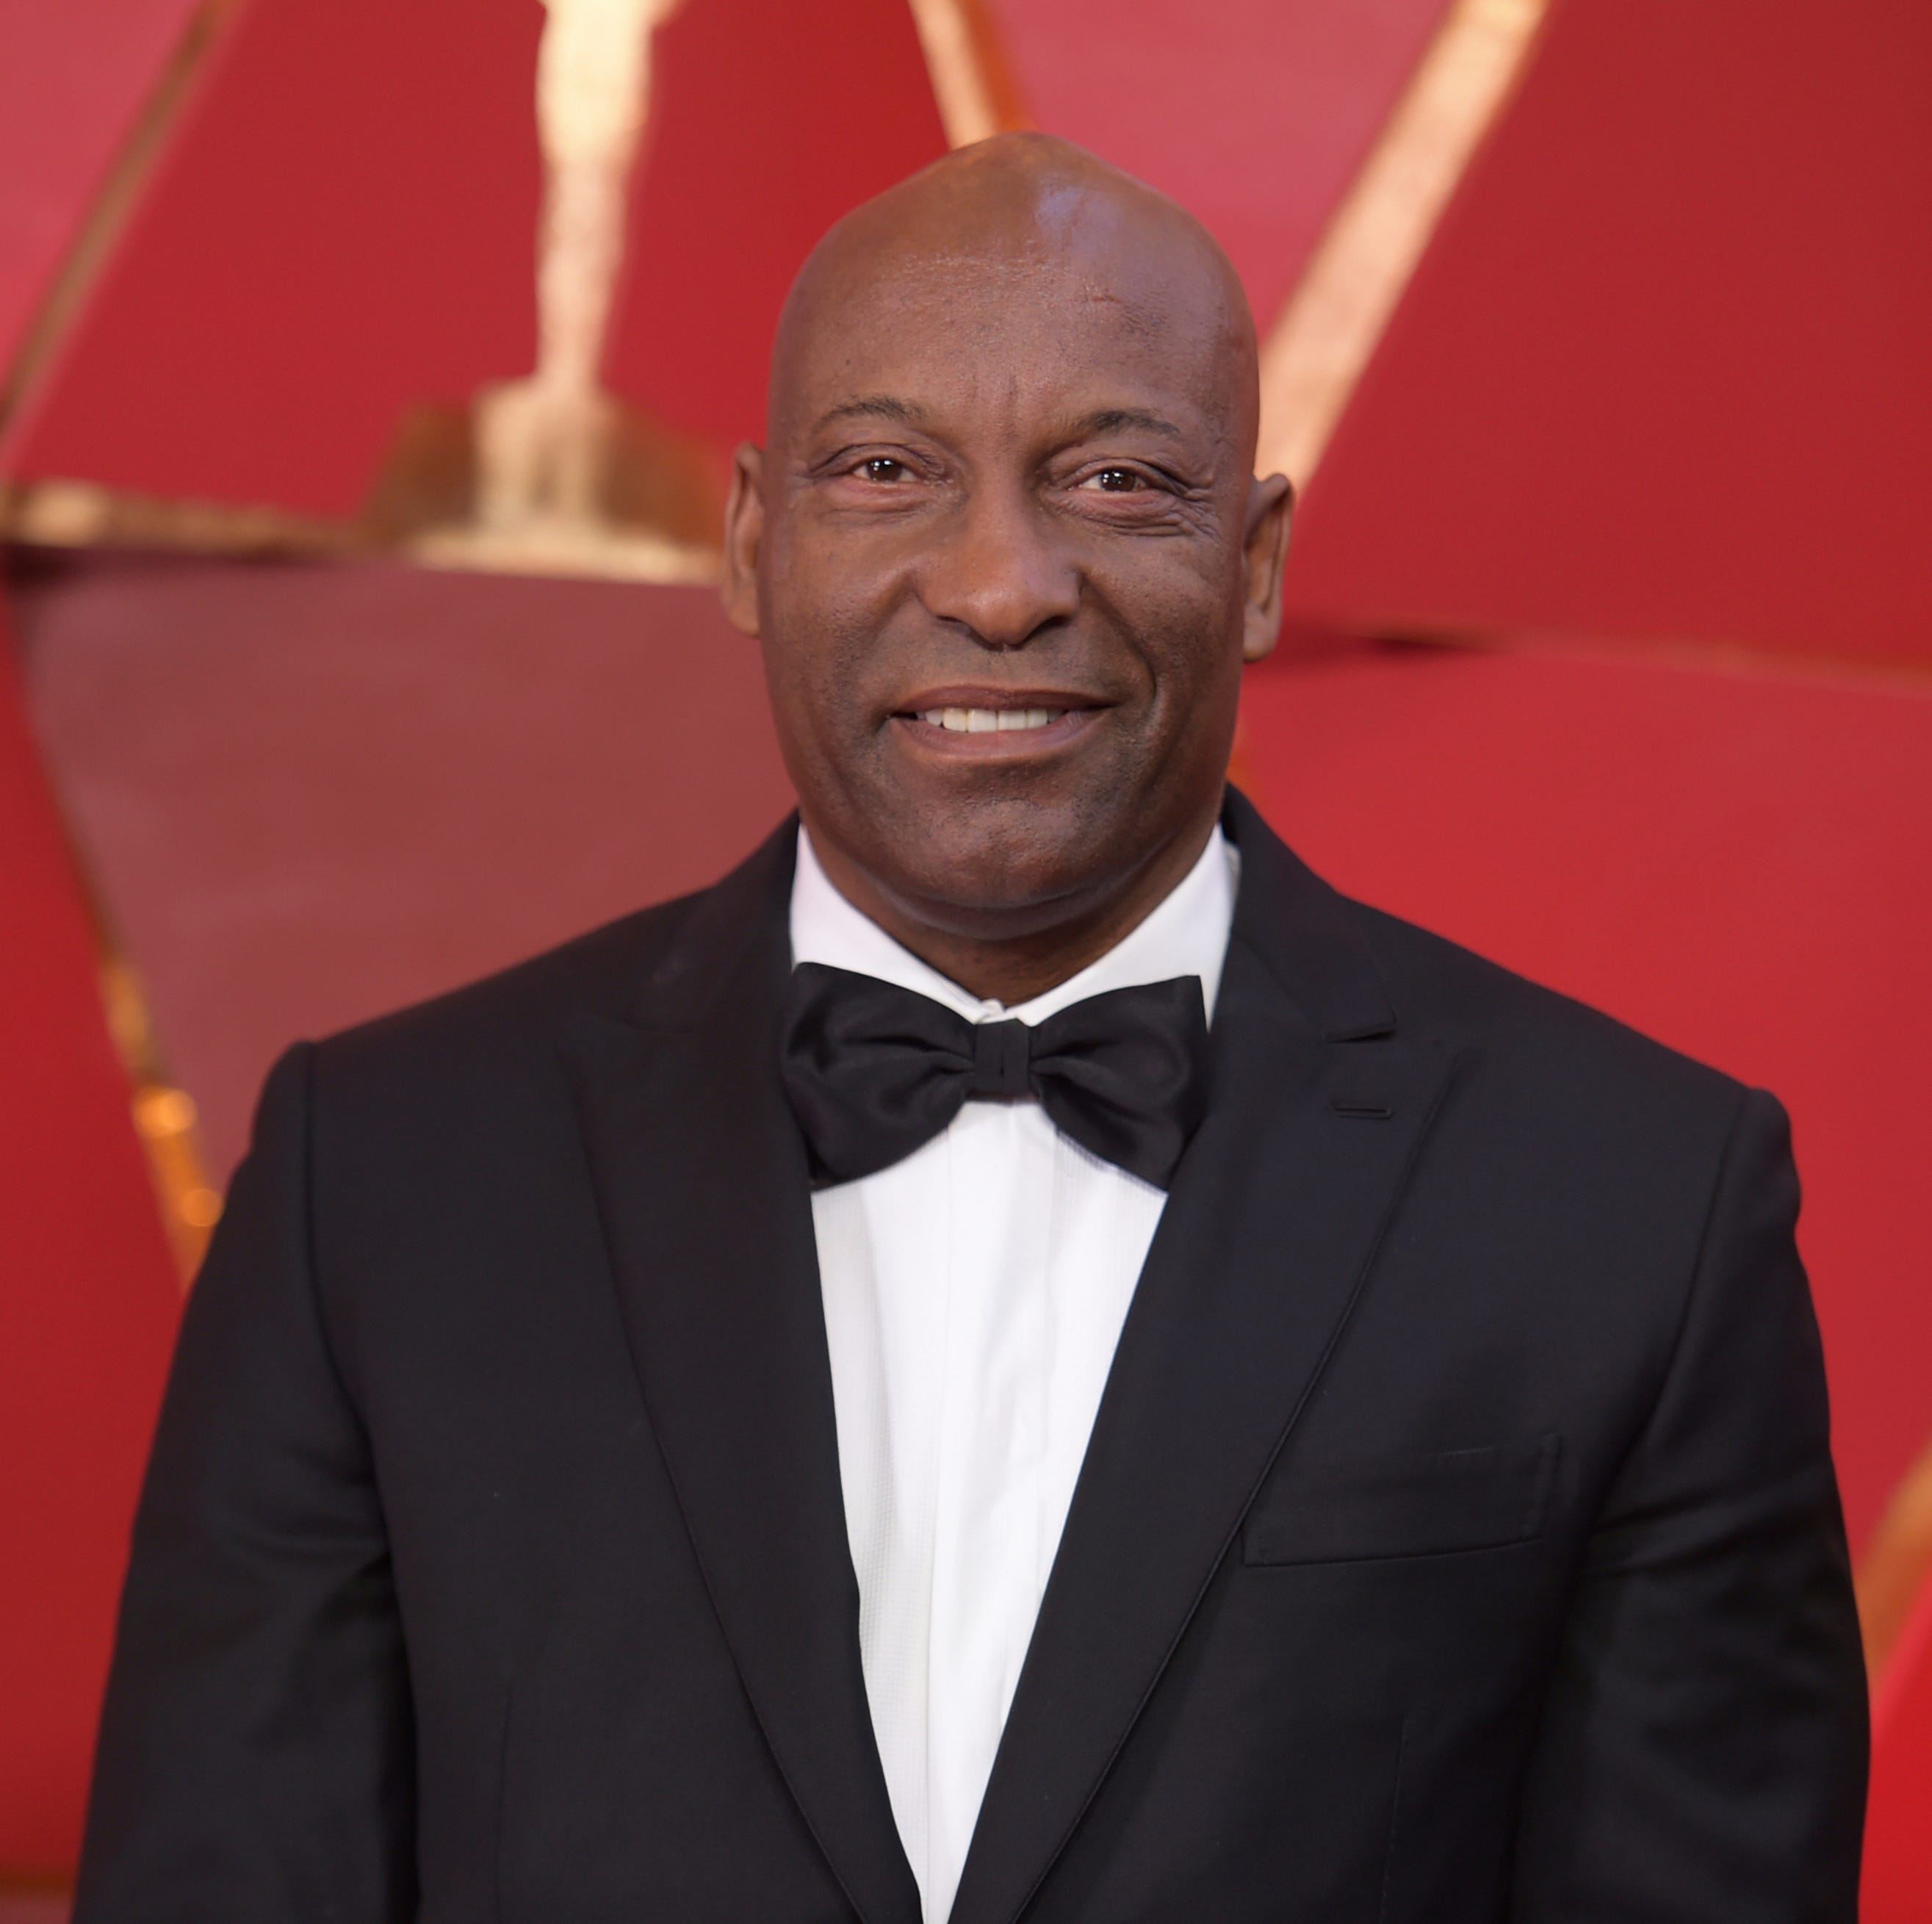 Director John Singleton, who was significant in Memphis as well as Hollywood, is dead at 51